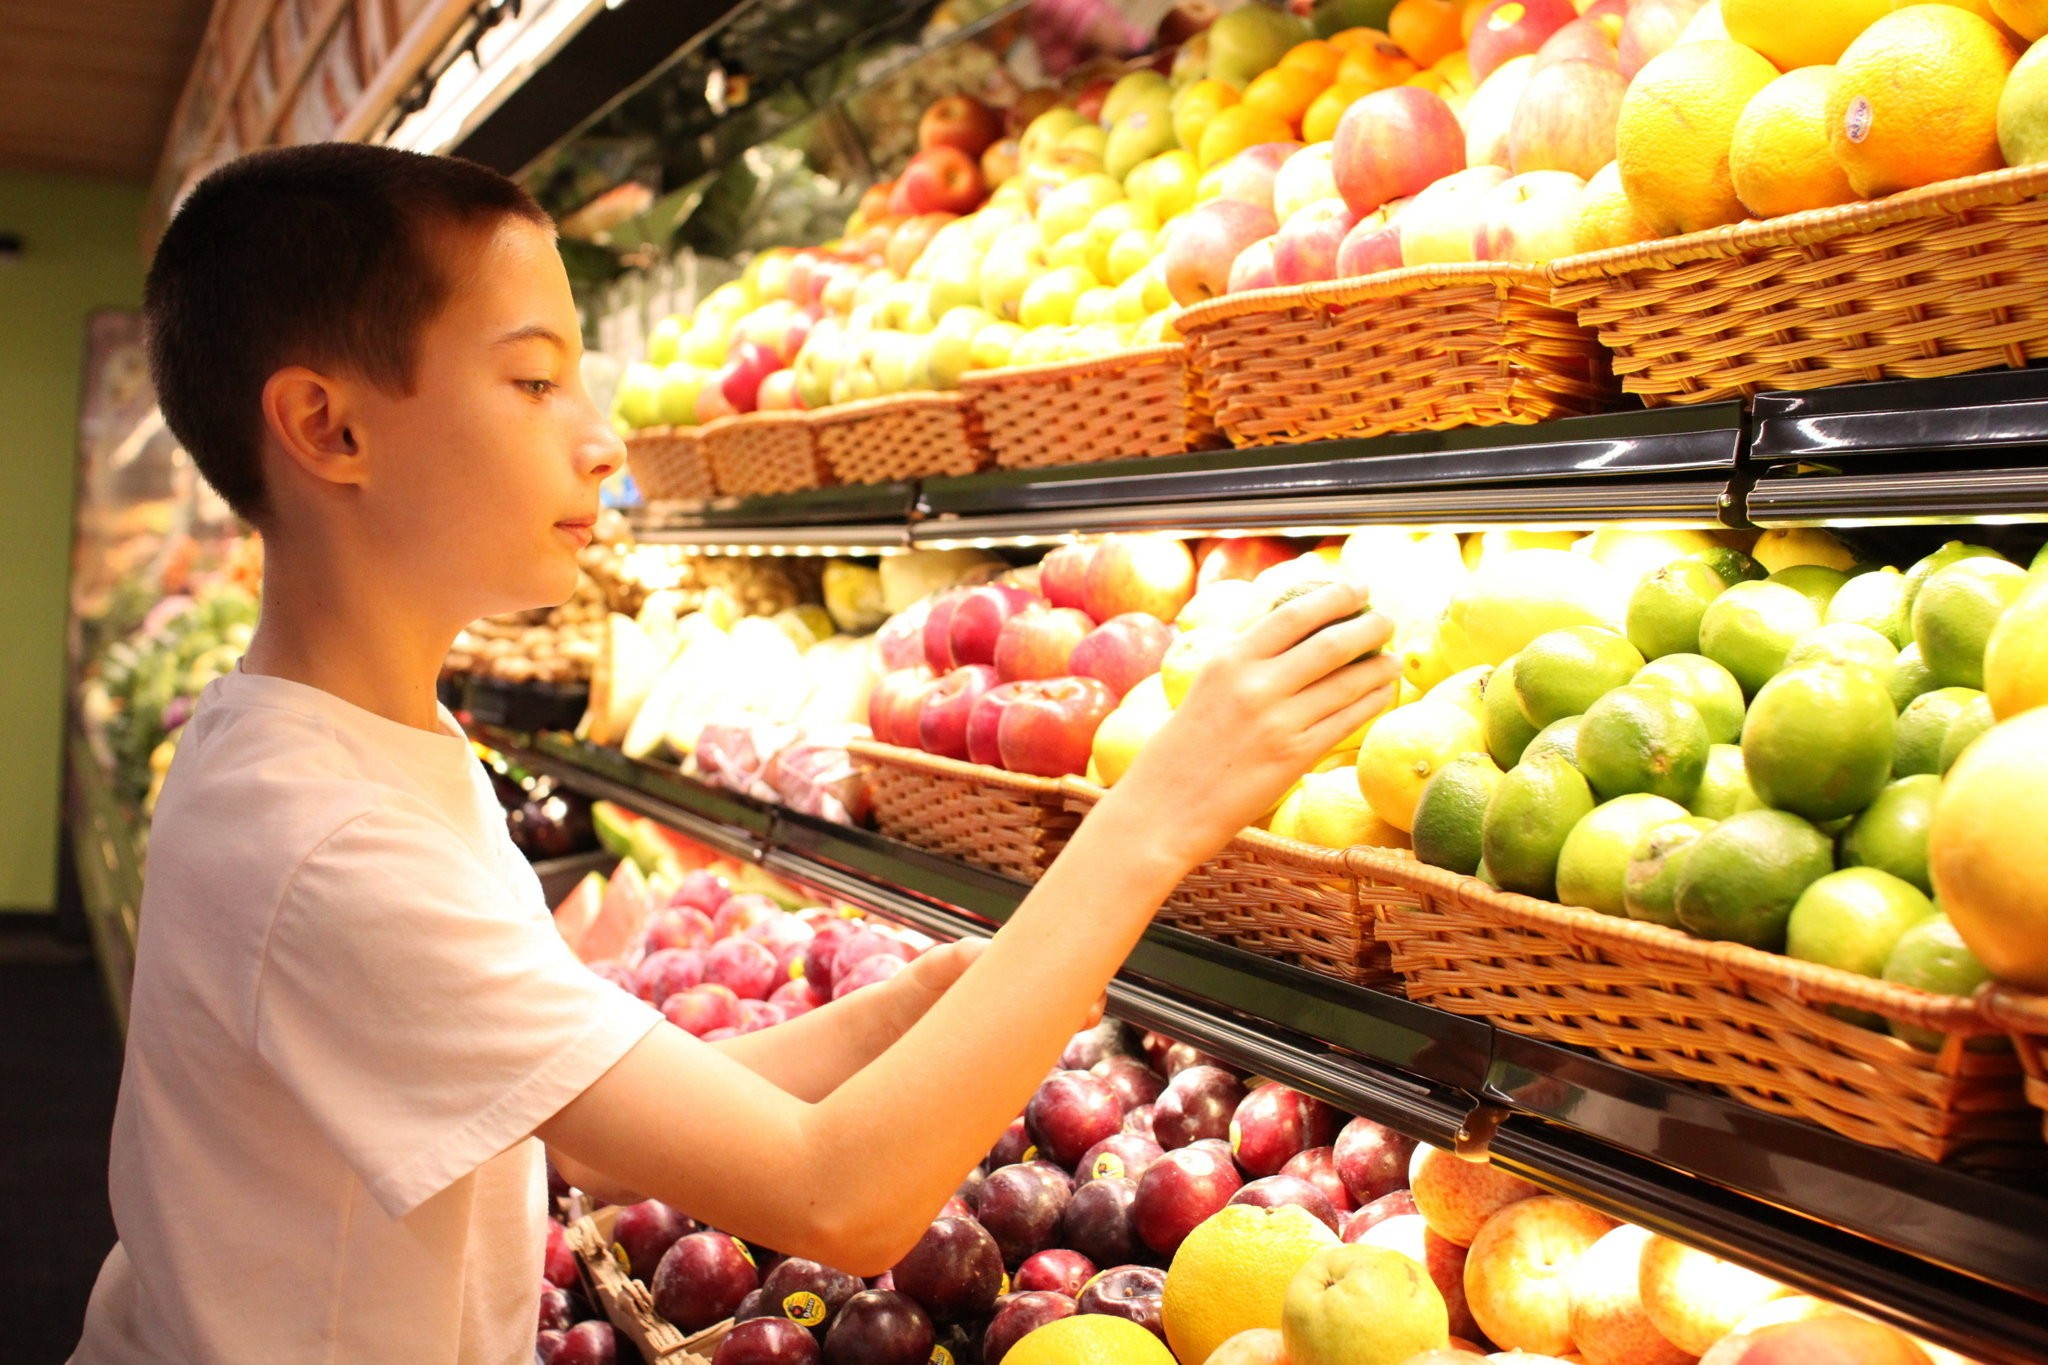 Natural Grocers offers organic produce, large vitamin